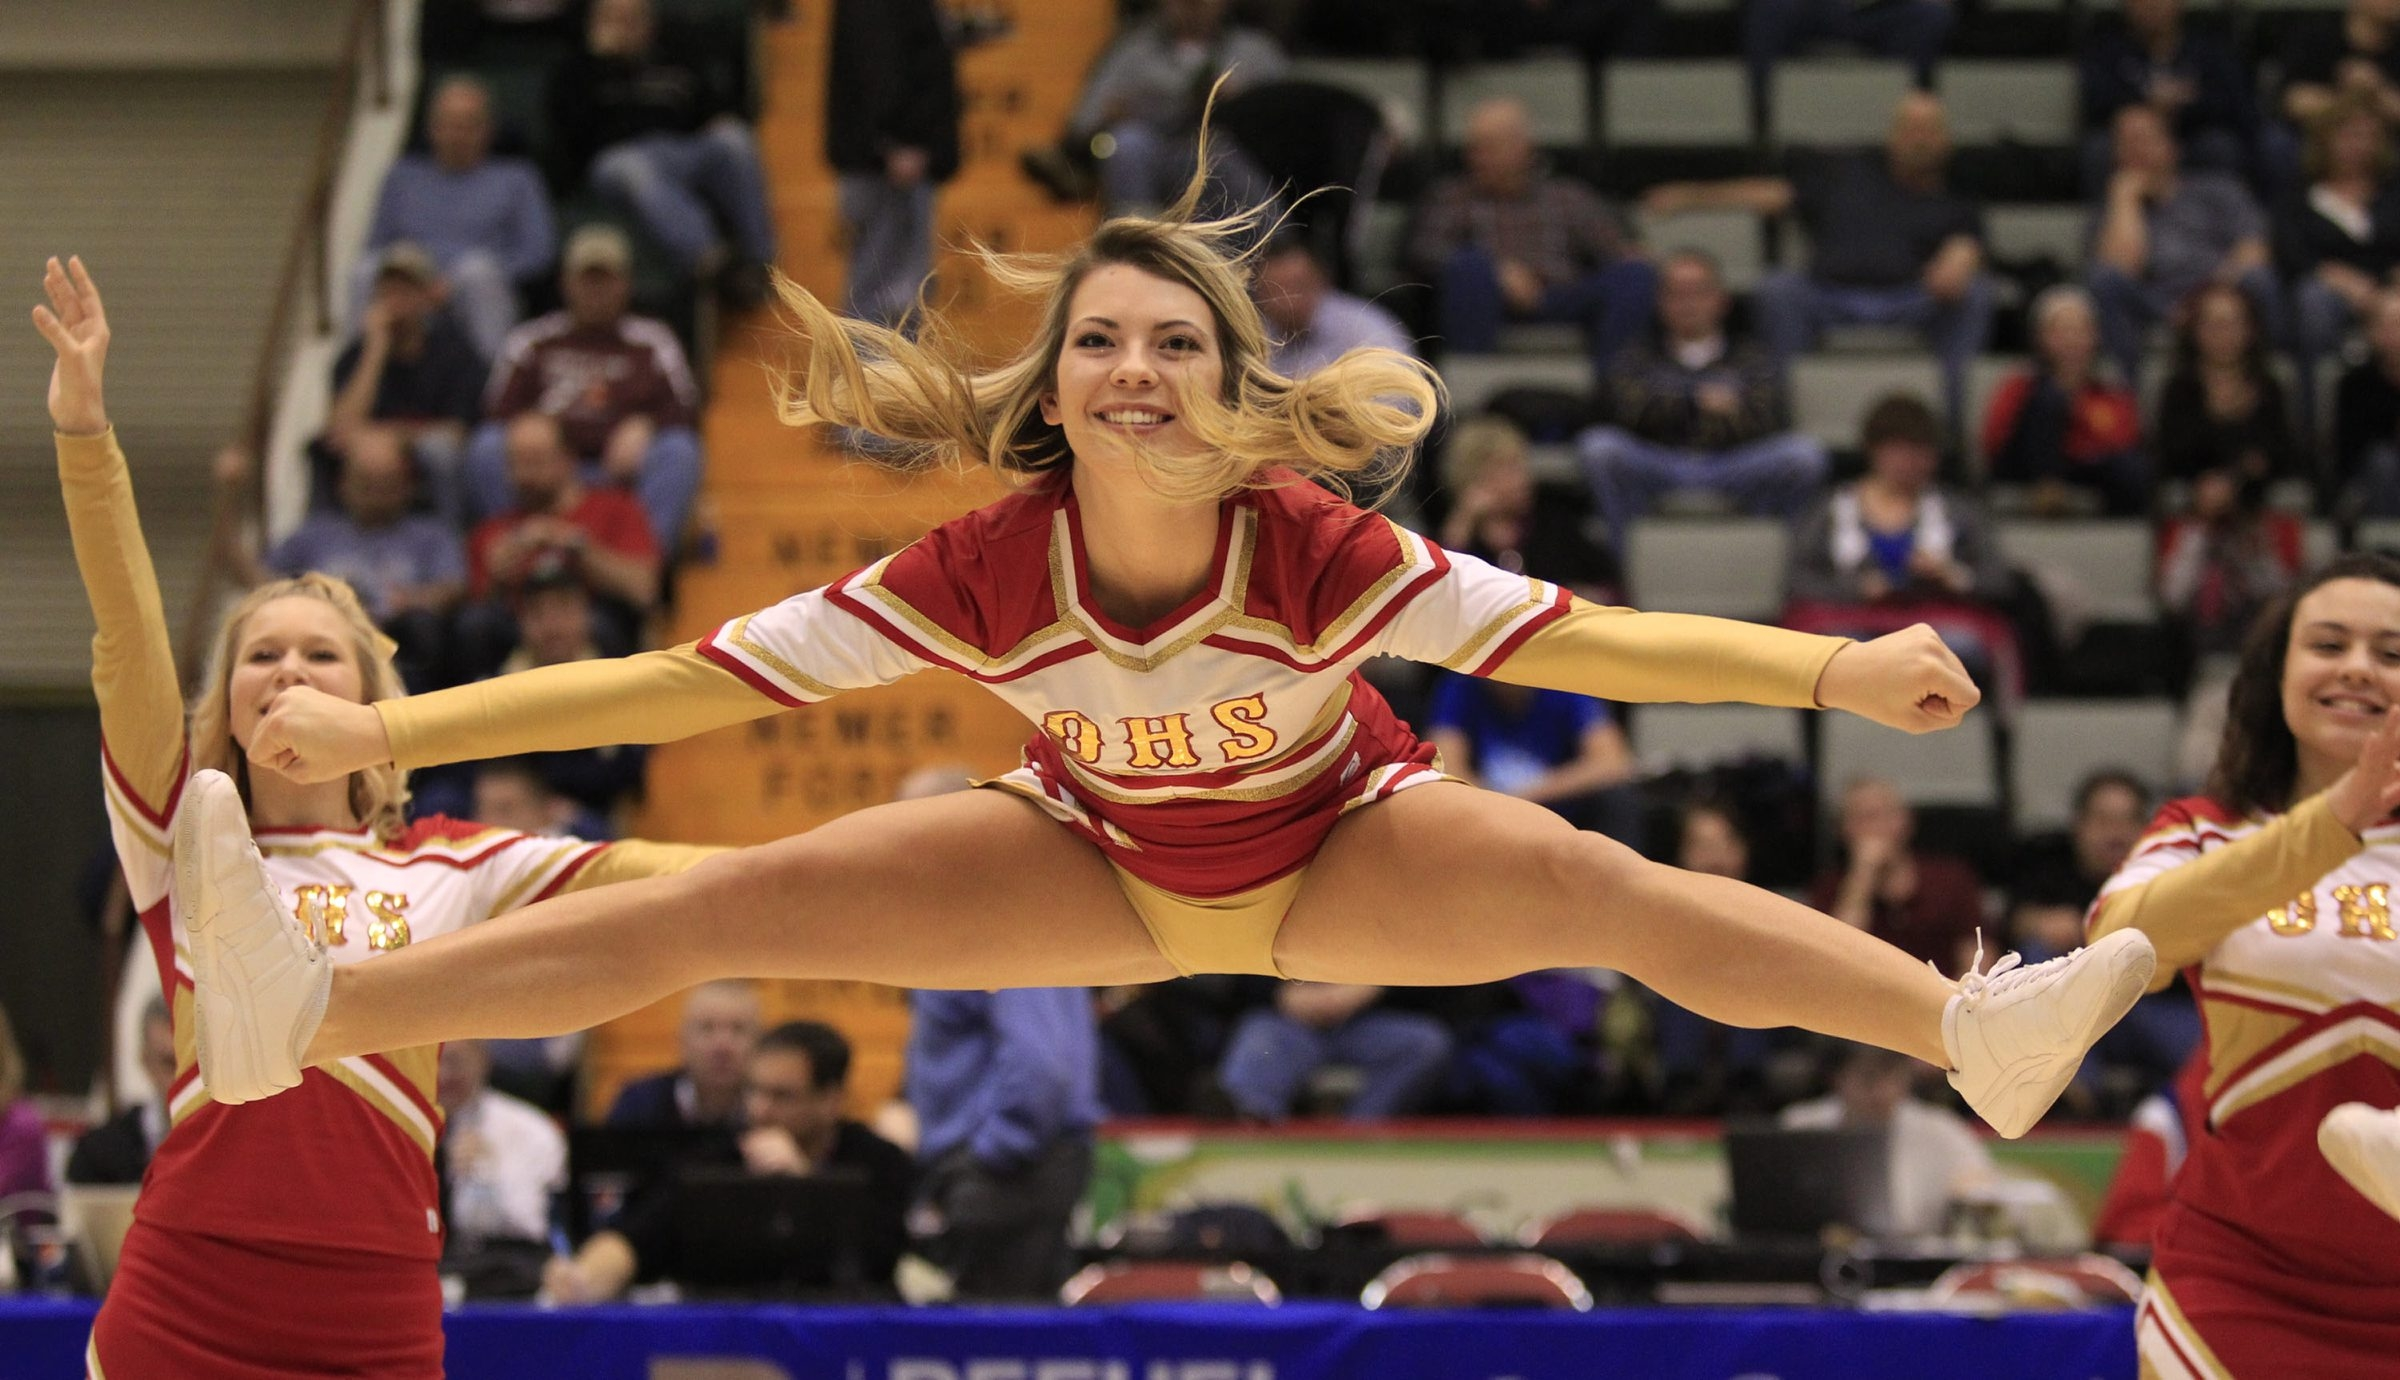 Olean High School cheerleaders perform during a basketball playoff game last month.